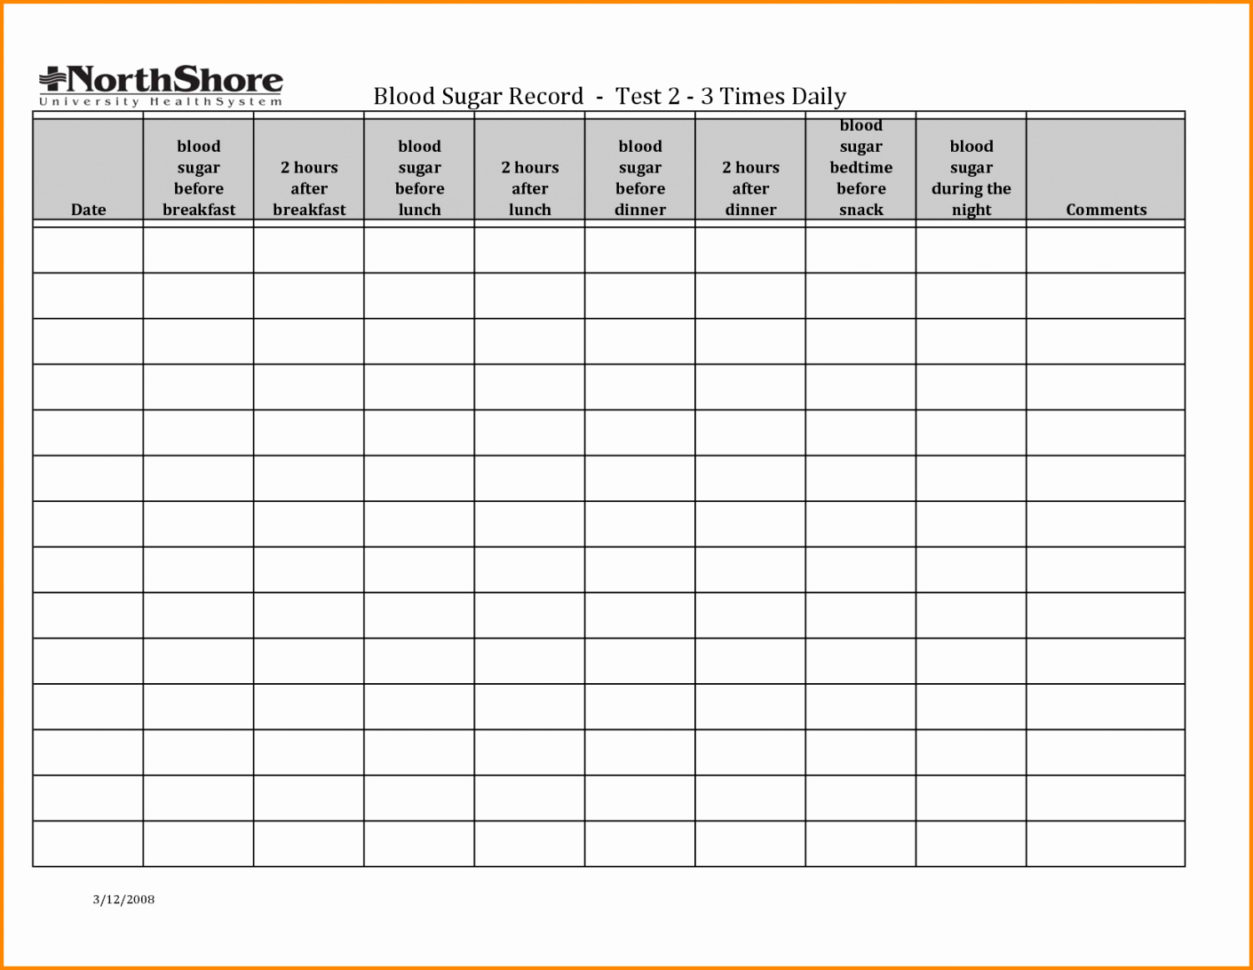 Blood Test Spreadsheet Throughout Blood Sugar Spreadsheet For Blood Sugareadsheet Log Diabetes Glucose